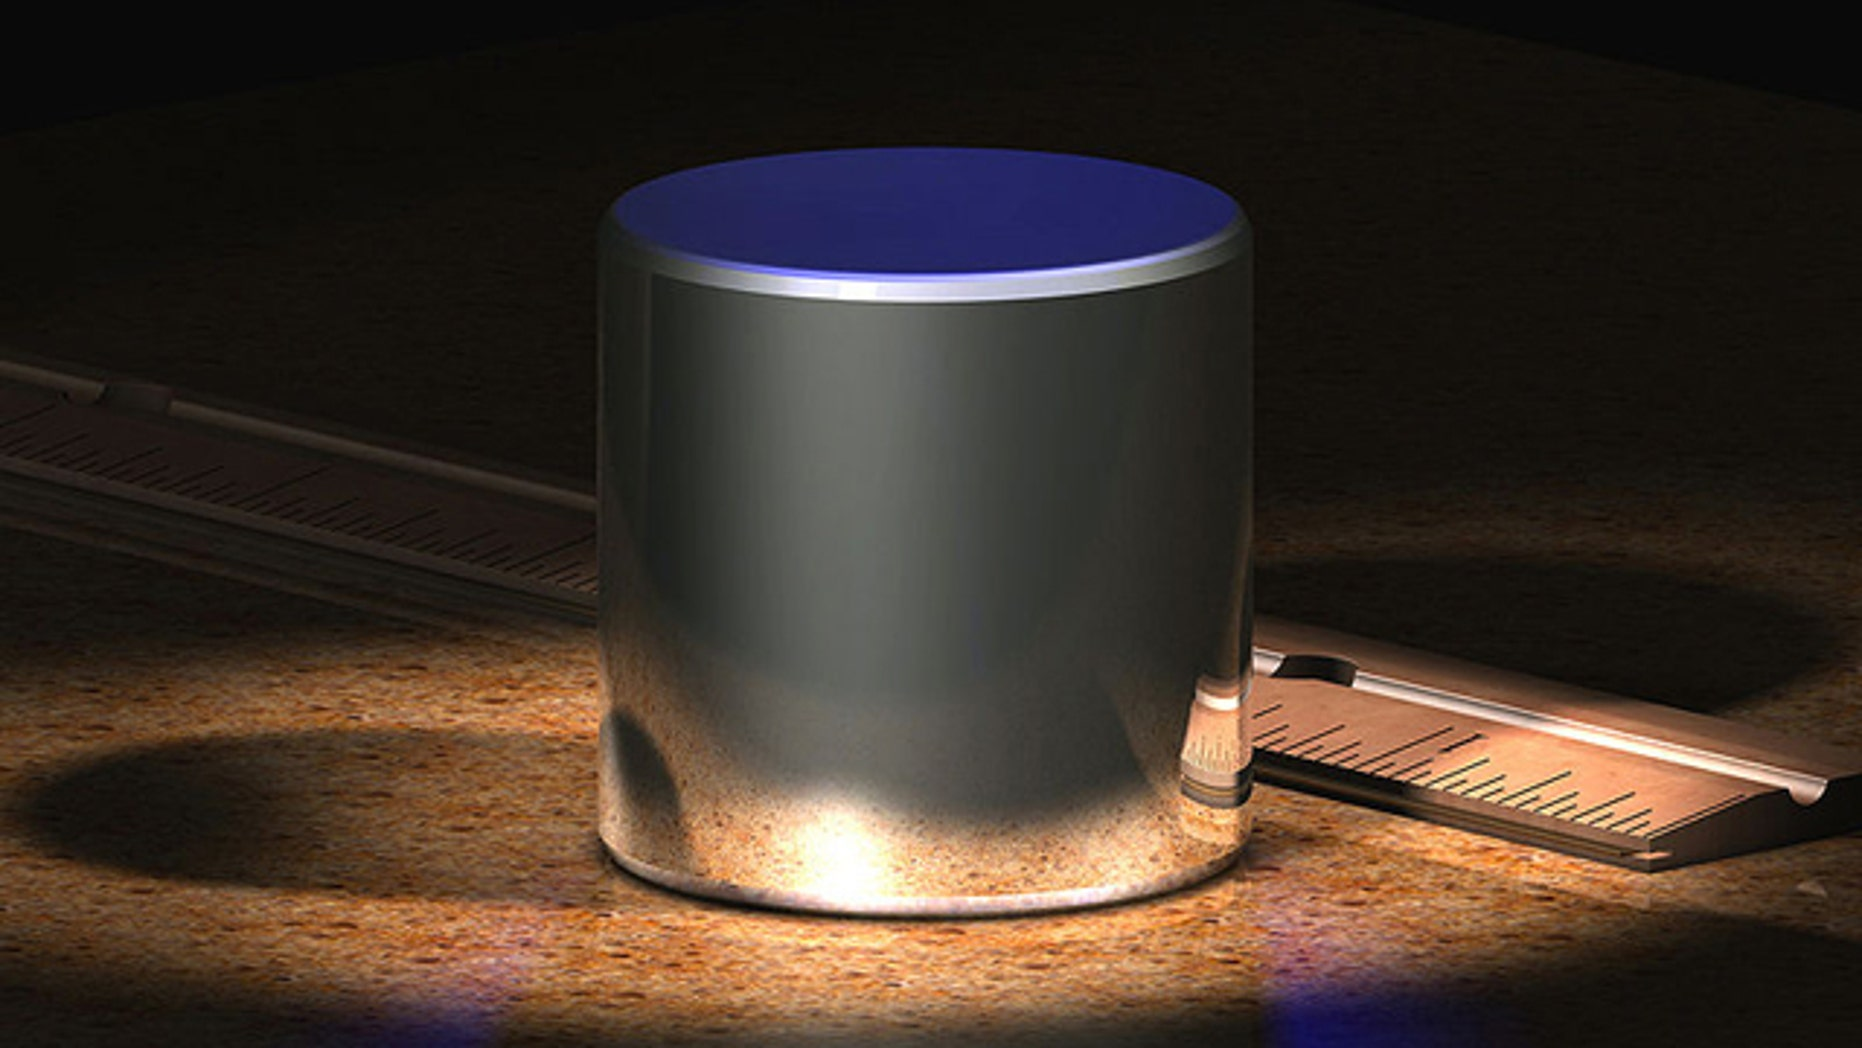 A computer-generated image of the International Prototype kilogram (IPK), which is made from an alloy of 90% platinum and 10% iridium and machined into a cylinder.